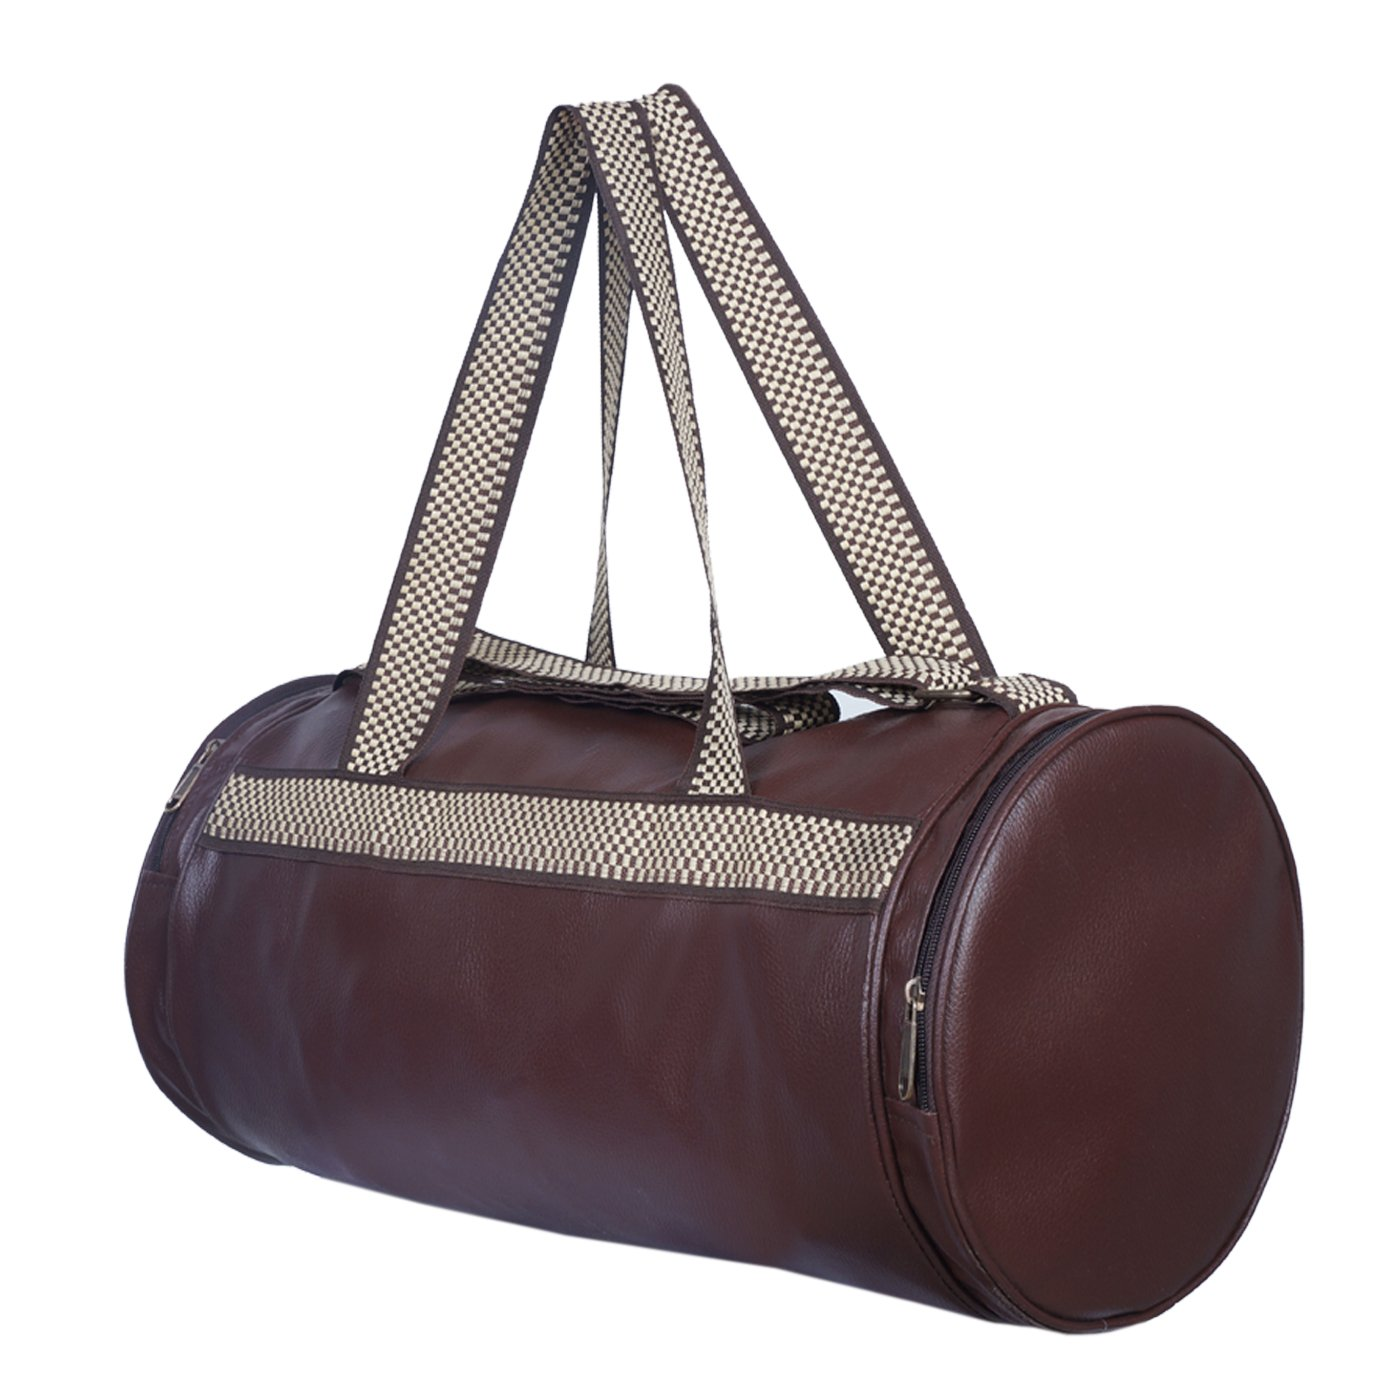 e91448decbf415 Dee Mannequin Retro Leather Rite Duffel Gym Bag: Amazon.in: Sports, Fitness  & Outdoors